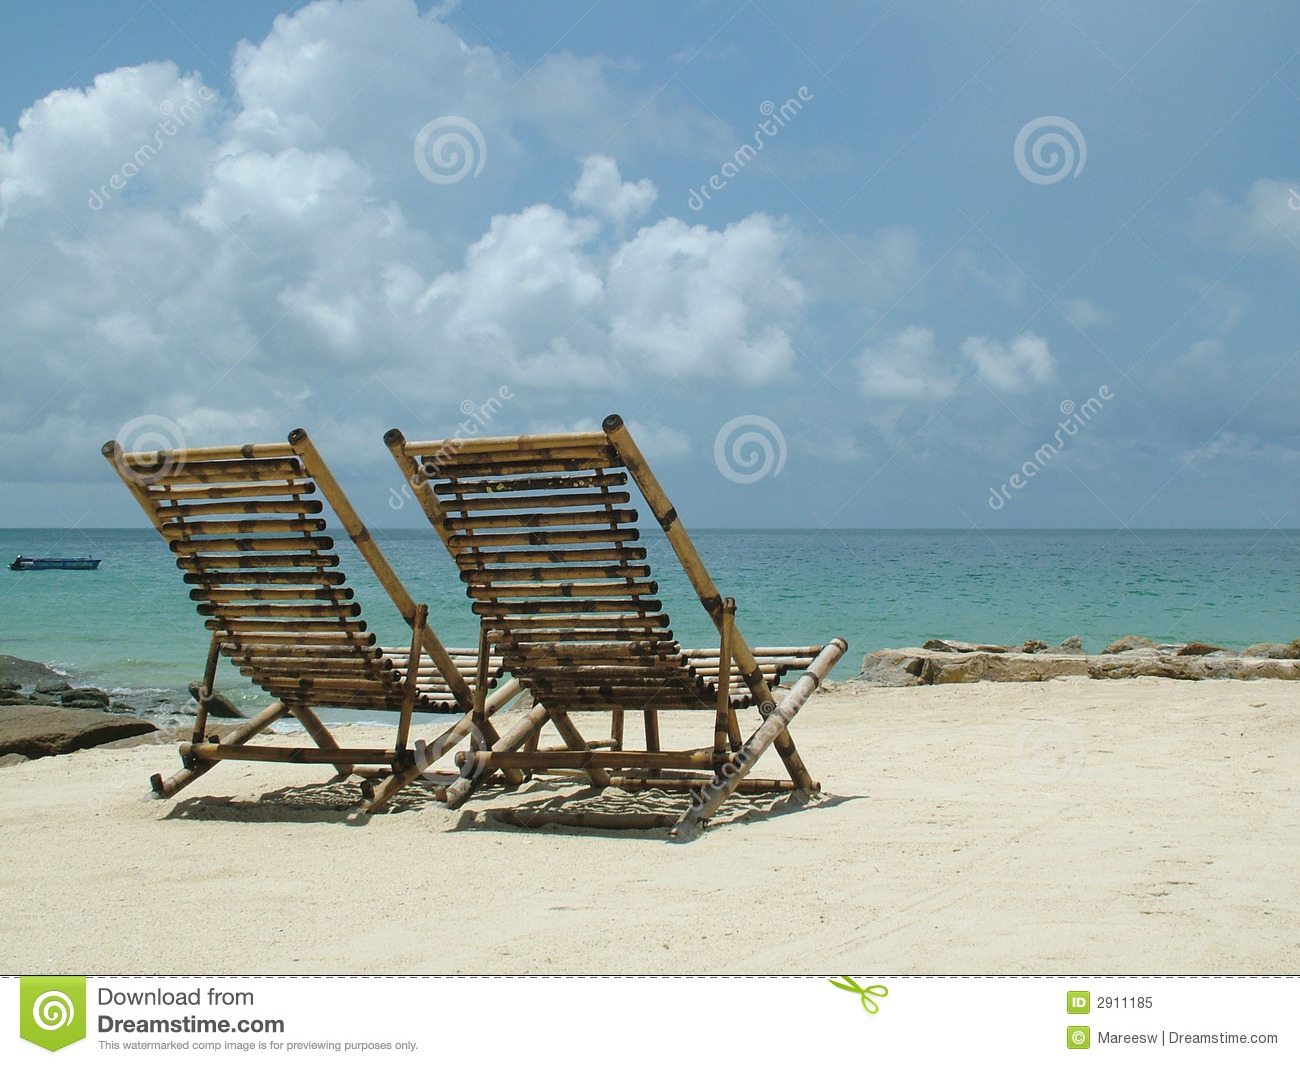 Wooden Beach Chairs Royalty Free Stock Photo - Image: 2911185